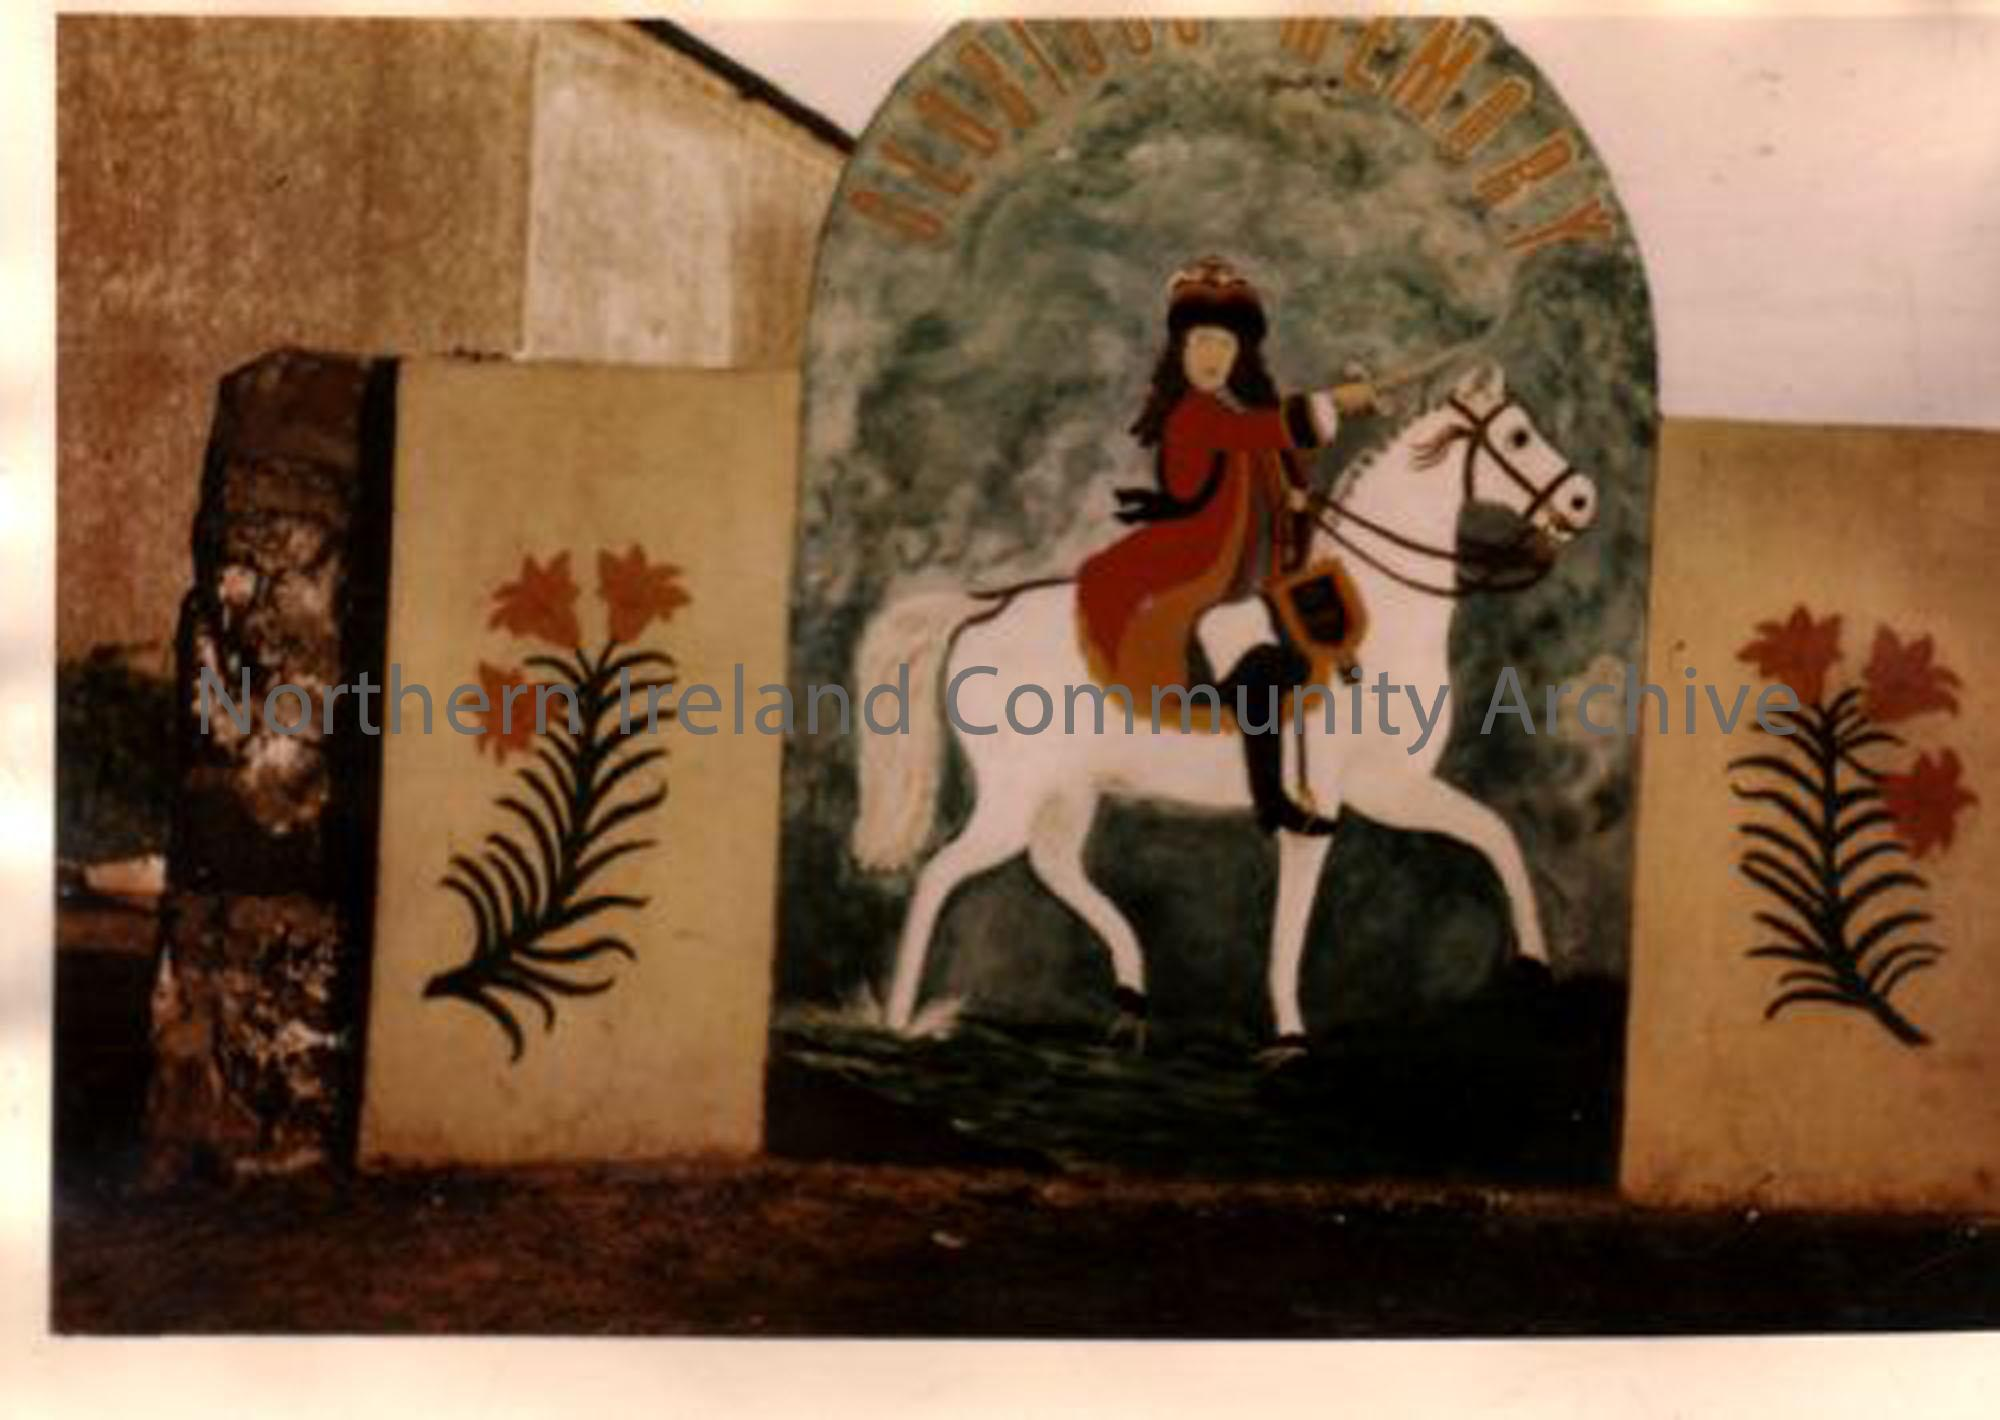 Mural of King William of Orange, created by Sandy Johnston. The lillies were painted by his daughter Molly. (2928)